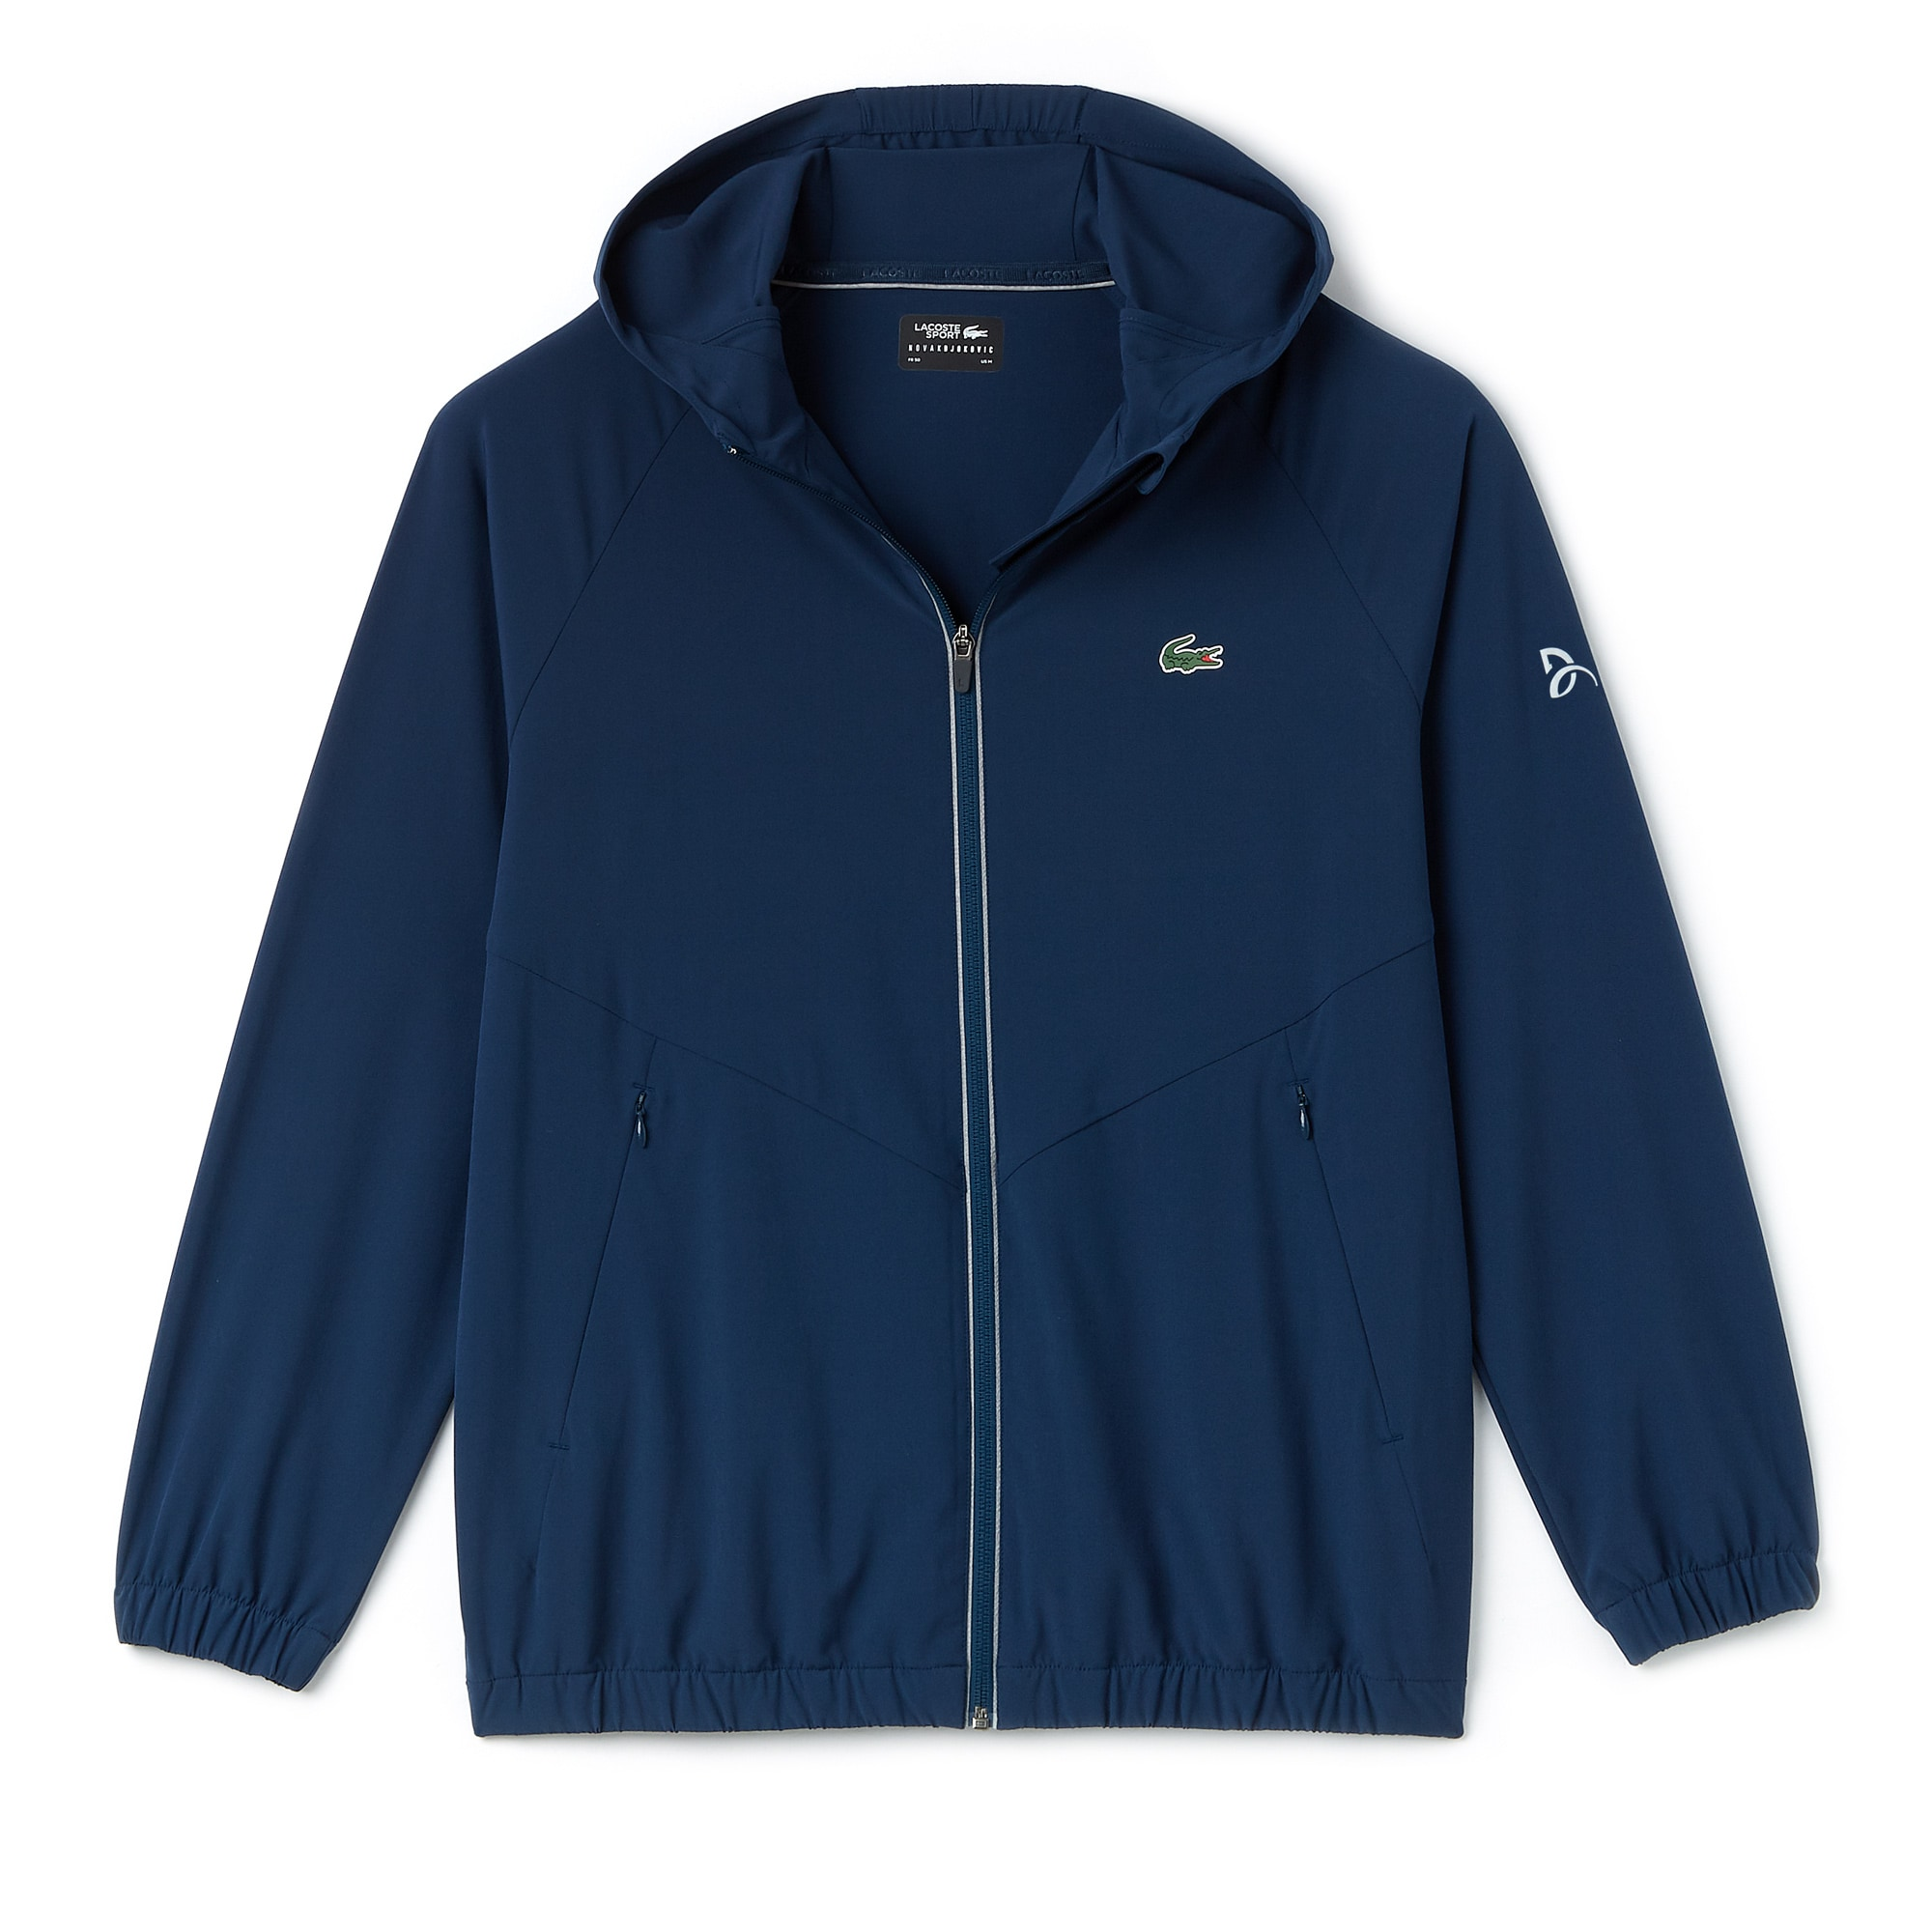 Men's Lacoste SPORT NOVAK DJOKOVIC-OFF COURT PREMIUM COLLECTION Hooded Stretch Technical Midlayer Jacket